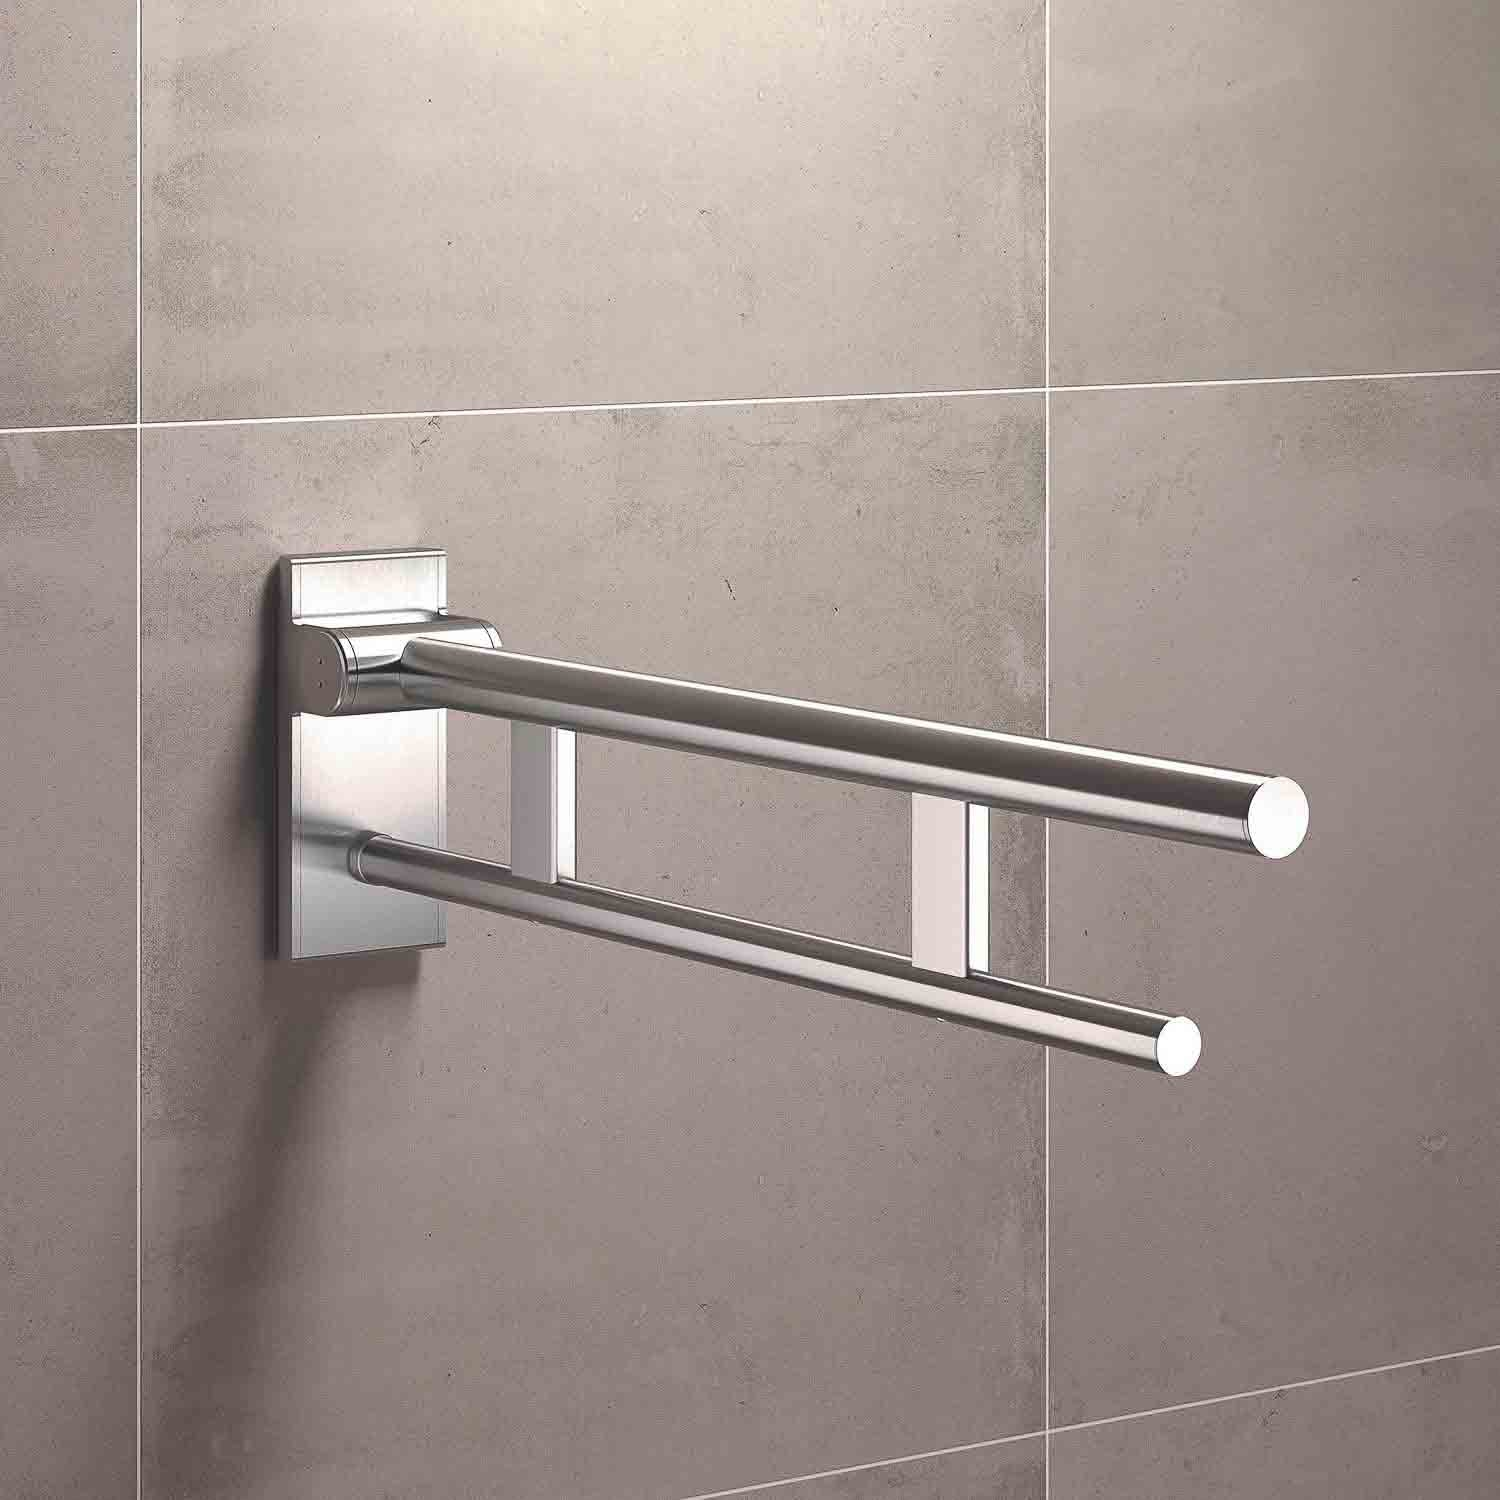 700mm Freestyle Removable Hinged Grab Rail Set with a satin steel finish lifestyle image